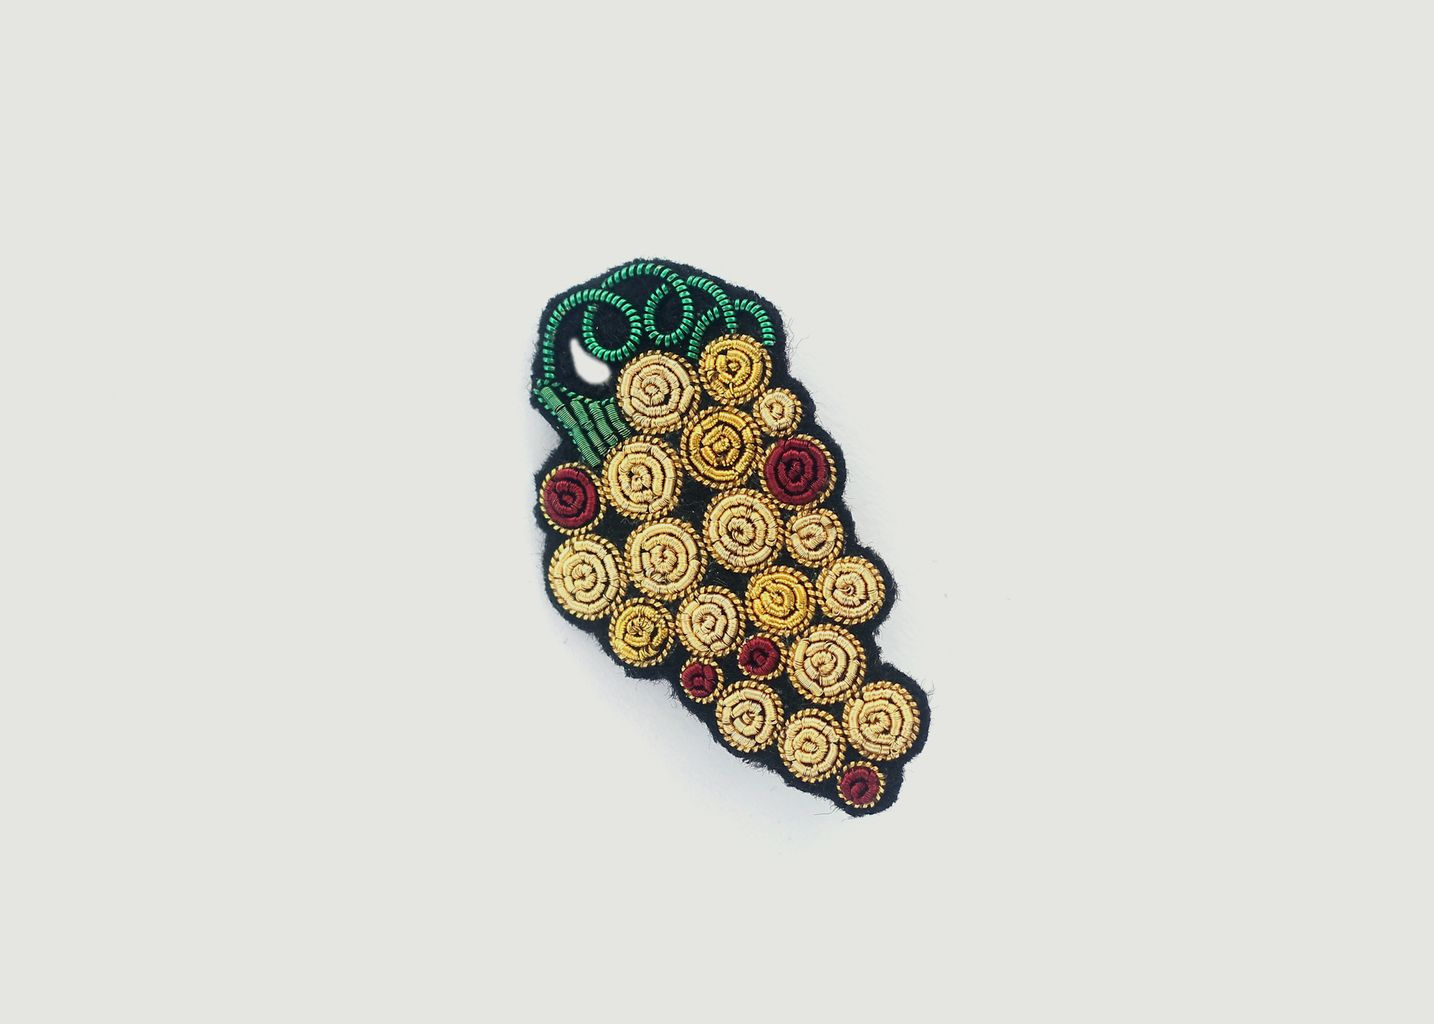 Broche Grappe de Raisin - Macon & Lesquoy